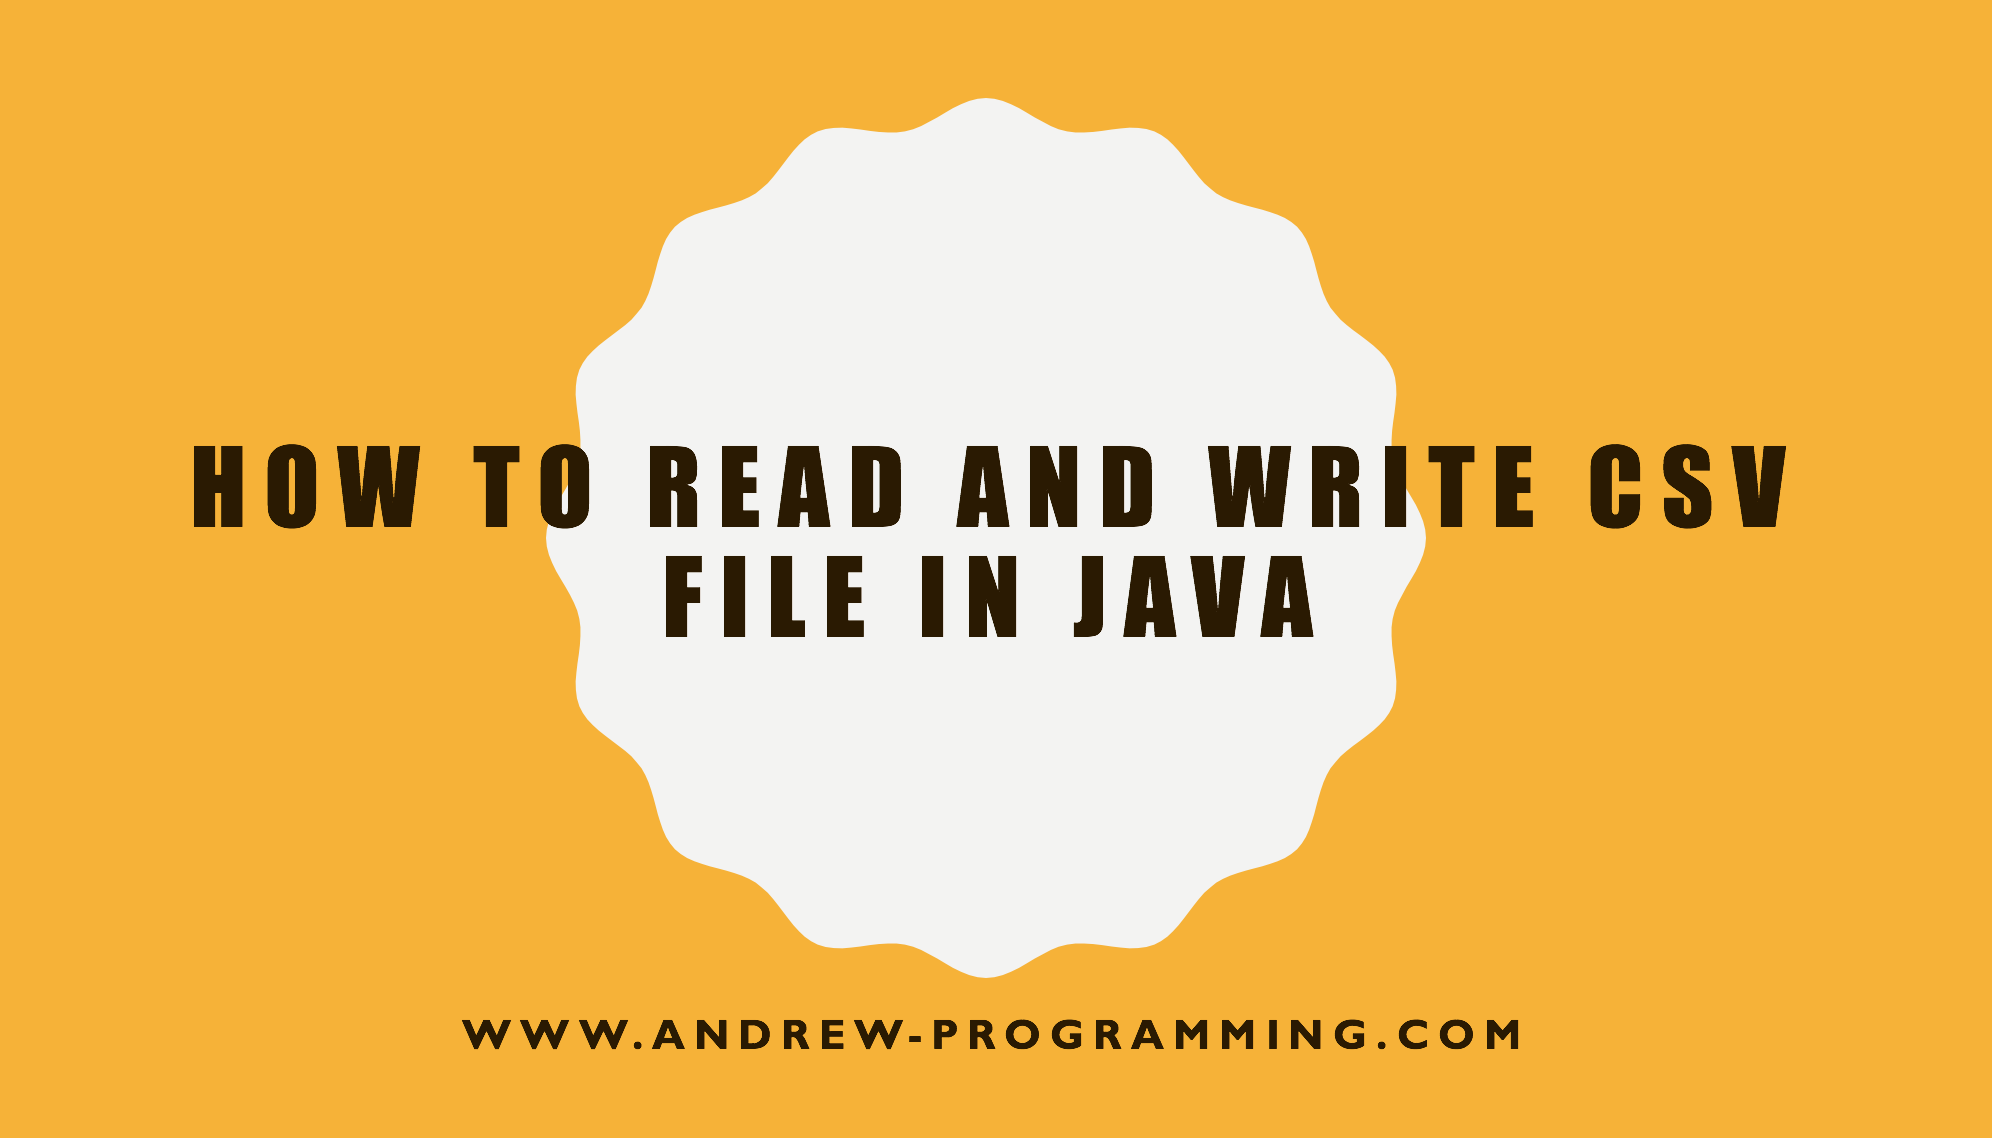 How to read and write CSV file in Java